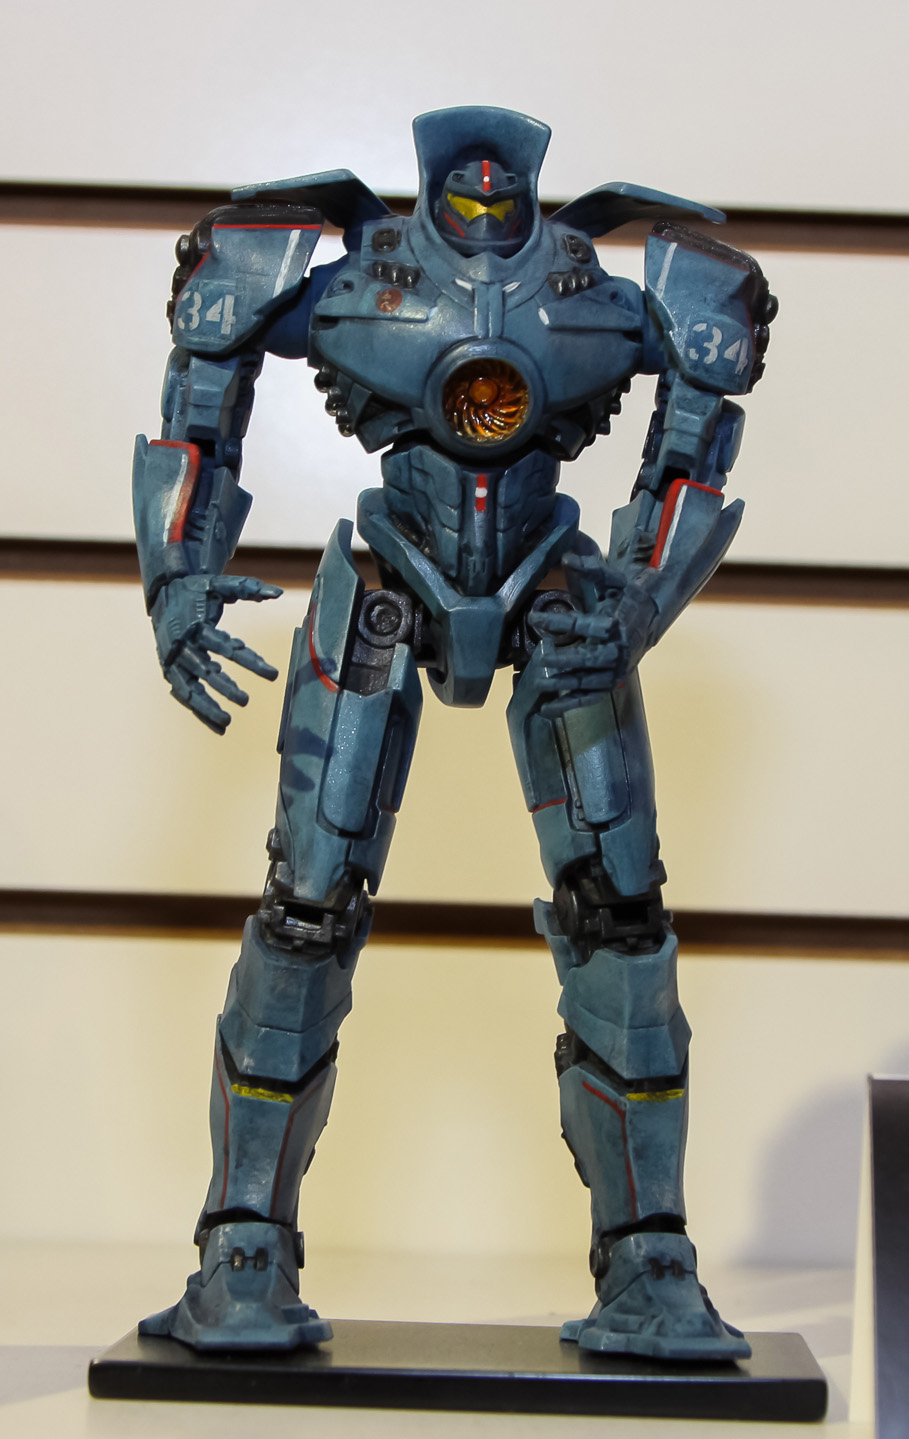 Stinny's Toy & Action Figure News Network: TOY NEWS FOR 2 ...